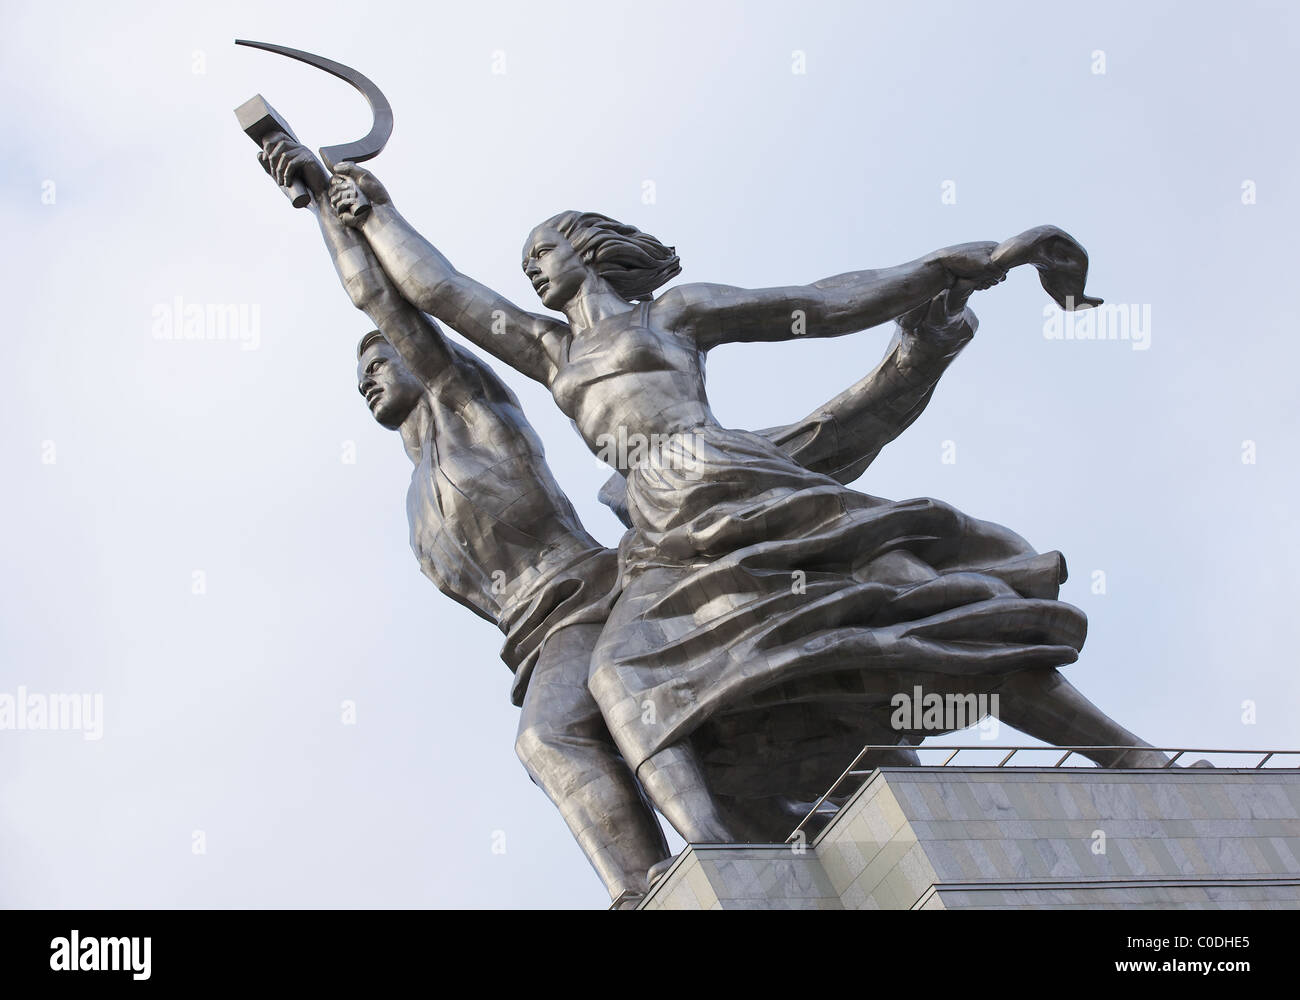 Worker and Kolkhoz Woman (Collective Farm Girl) monument, designed by Vera Mukhina, Moscow, Russia - Stock Image